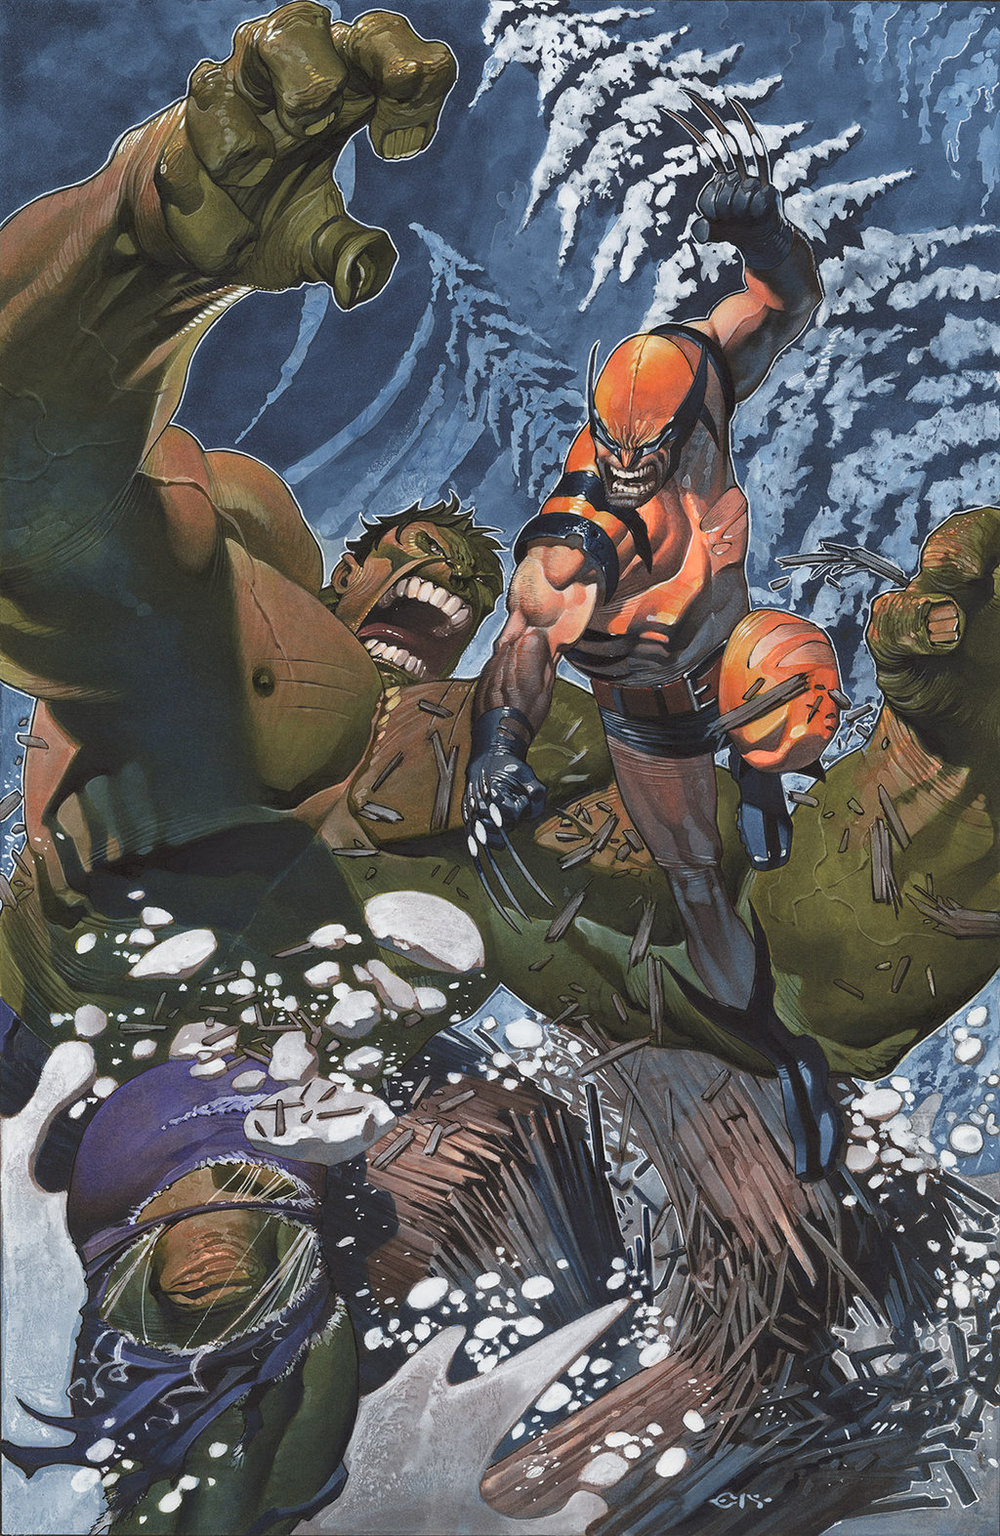 hulk_battles_wolvie_by_christopherstevens-dabicjy.jpg